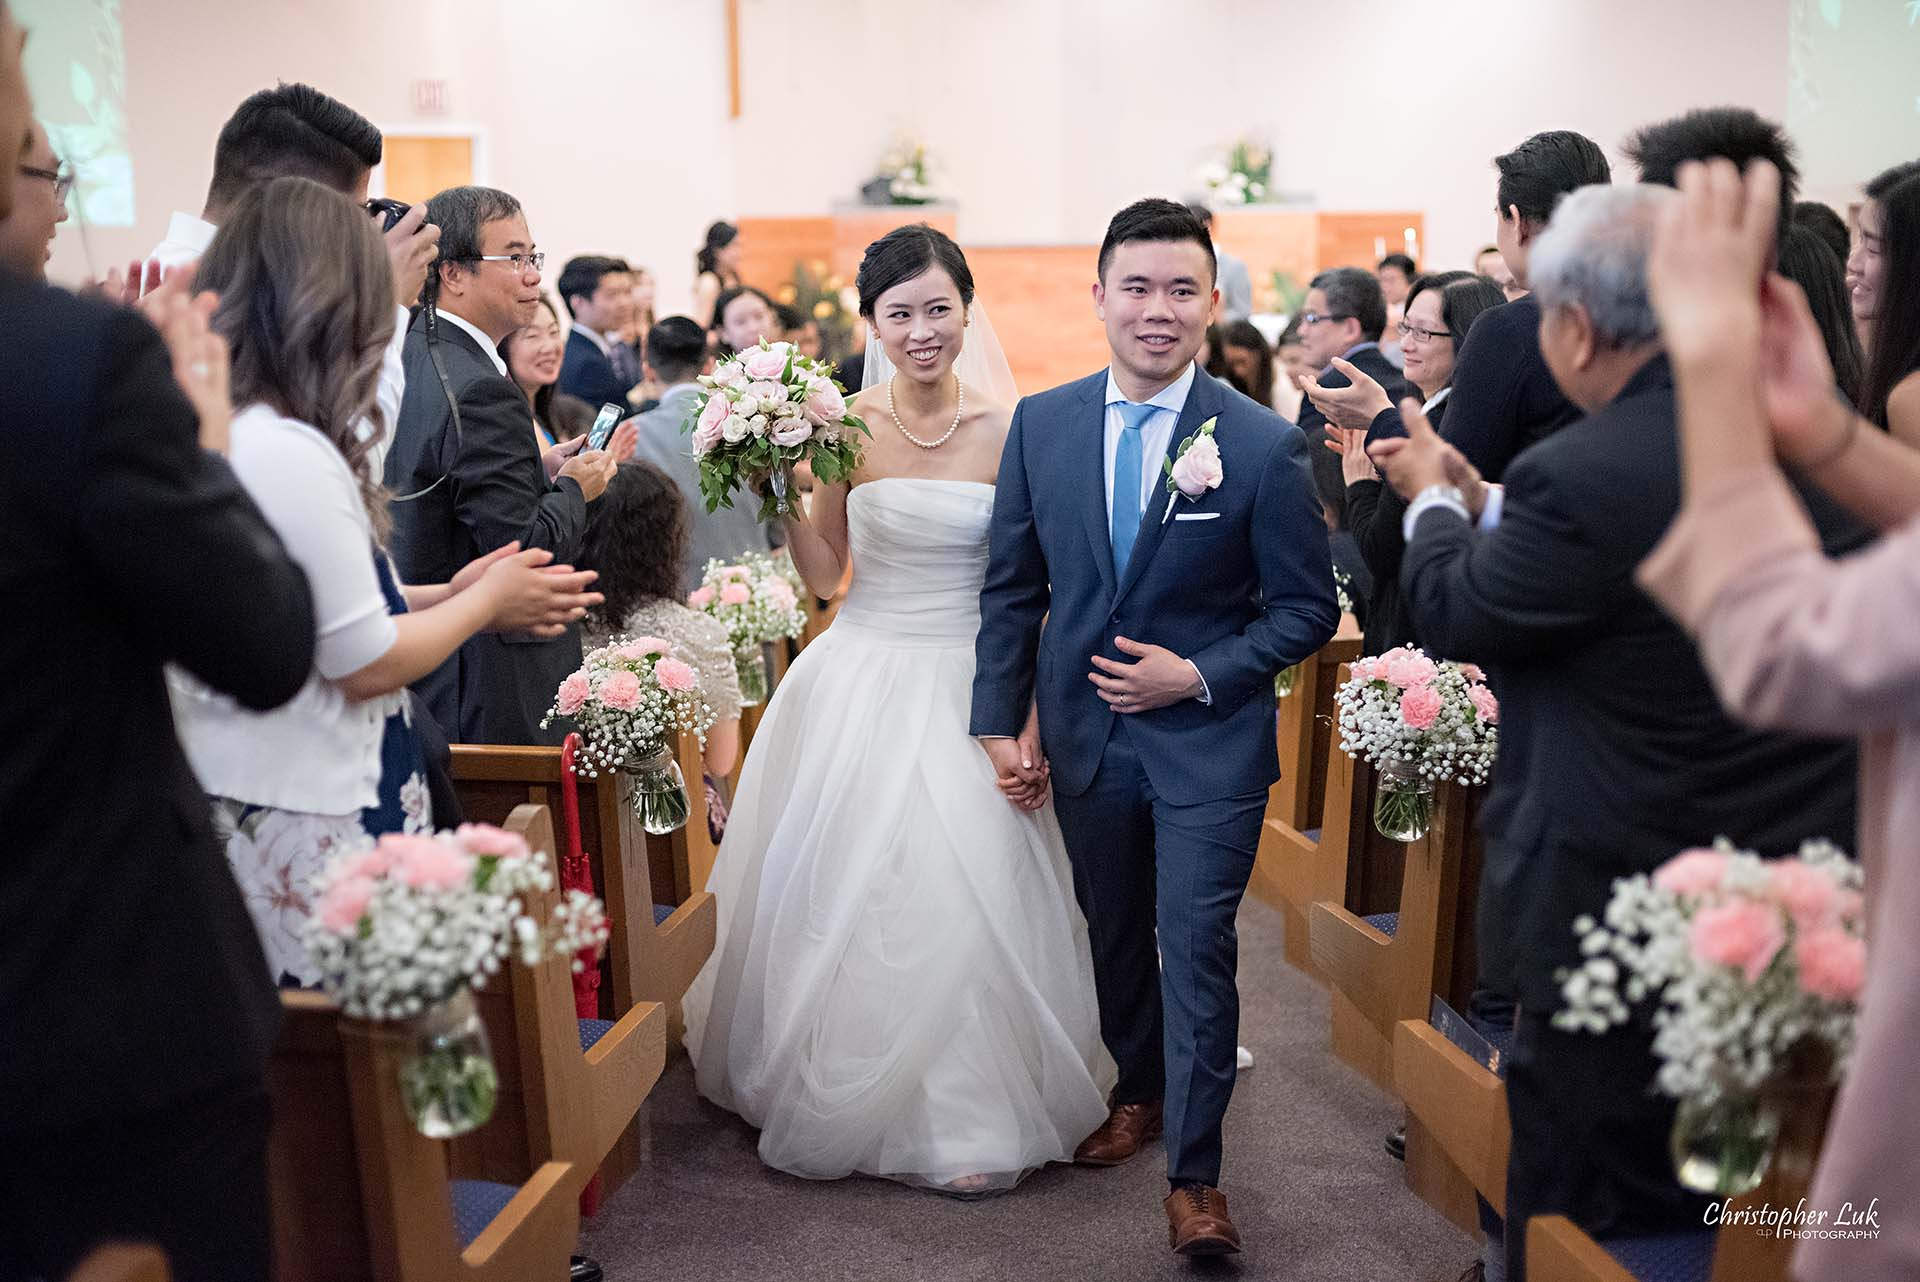 Christopher Luk Toronto Wedding Photographer Chinese Gospel Church Scarborough Ceremony Recessional Bride Groom Walking Aisle Out Together